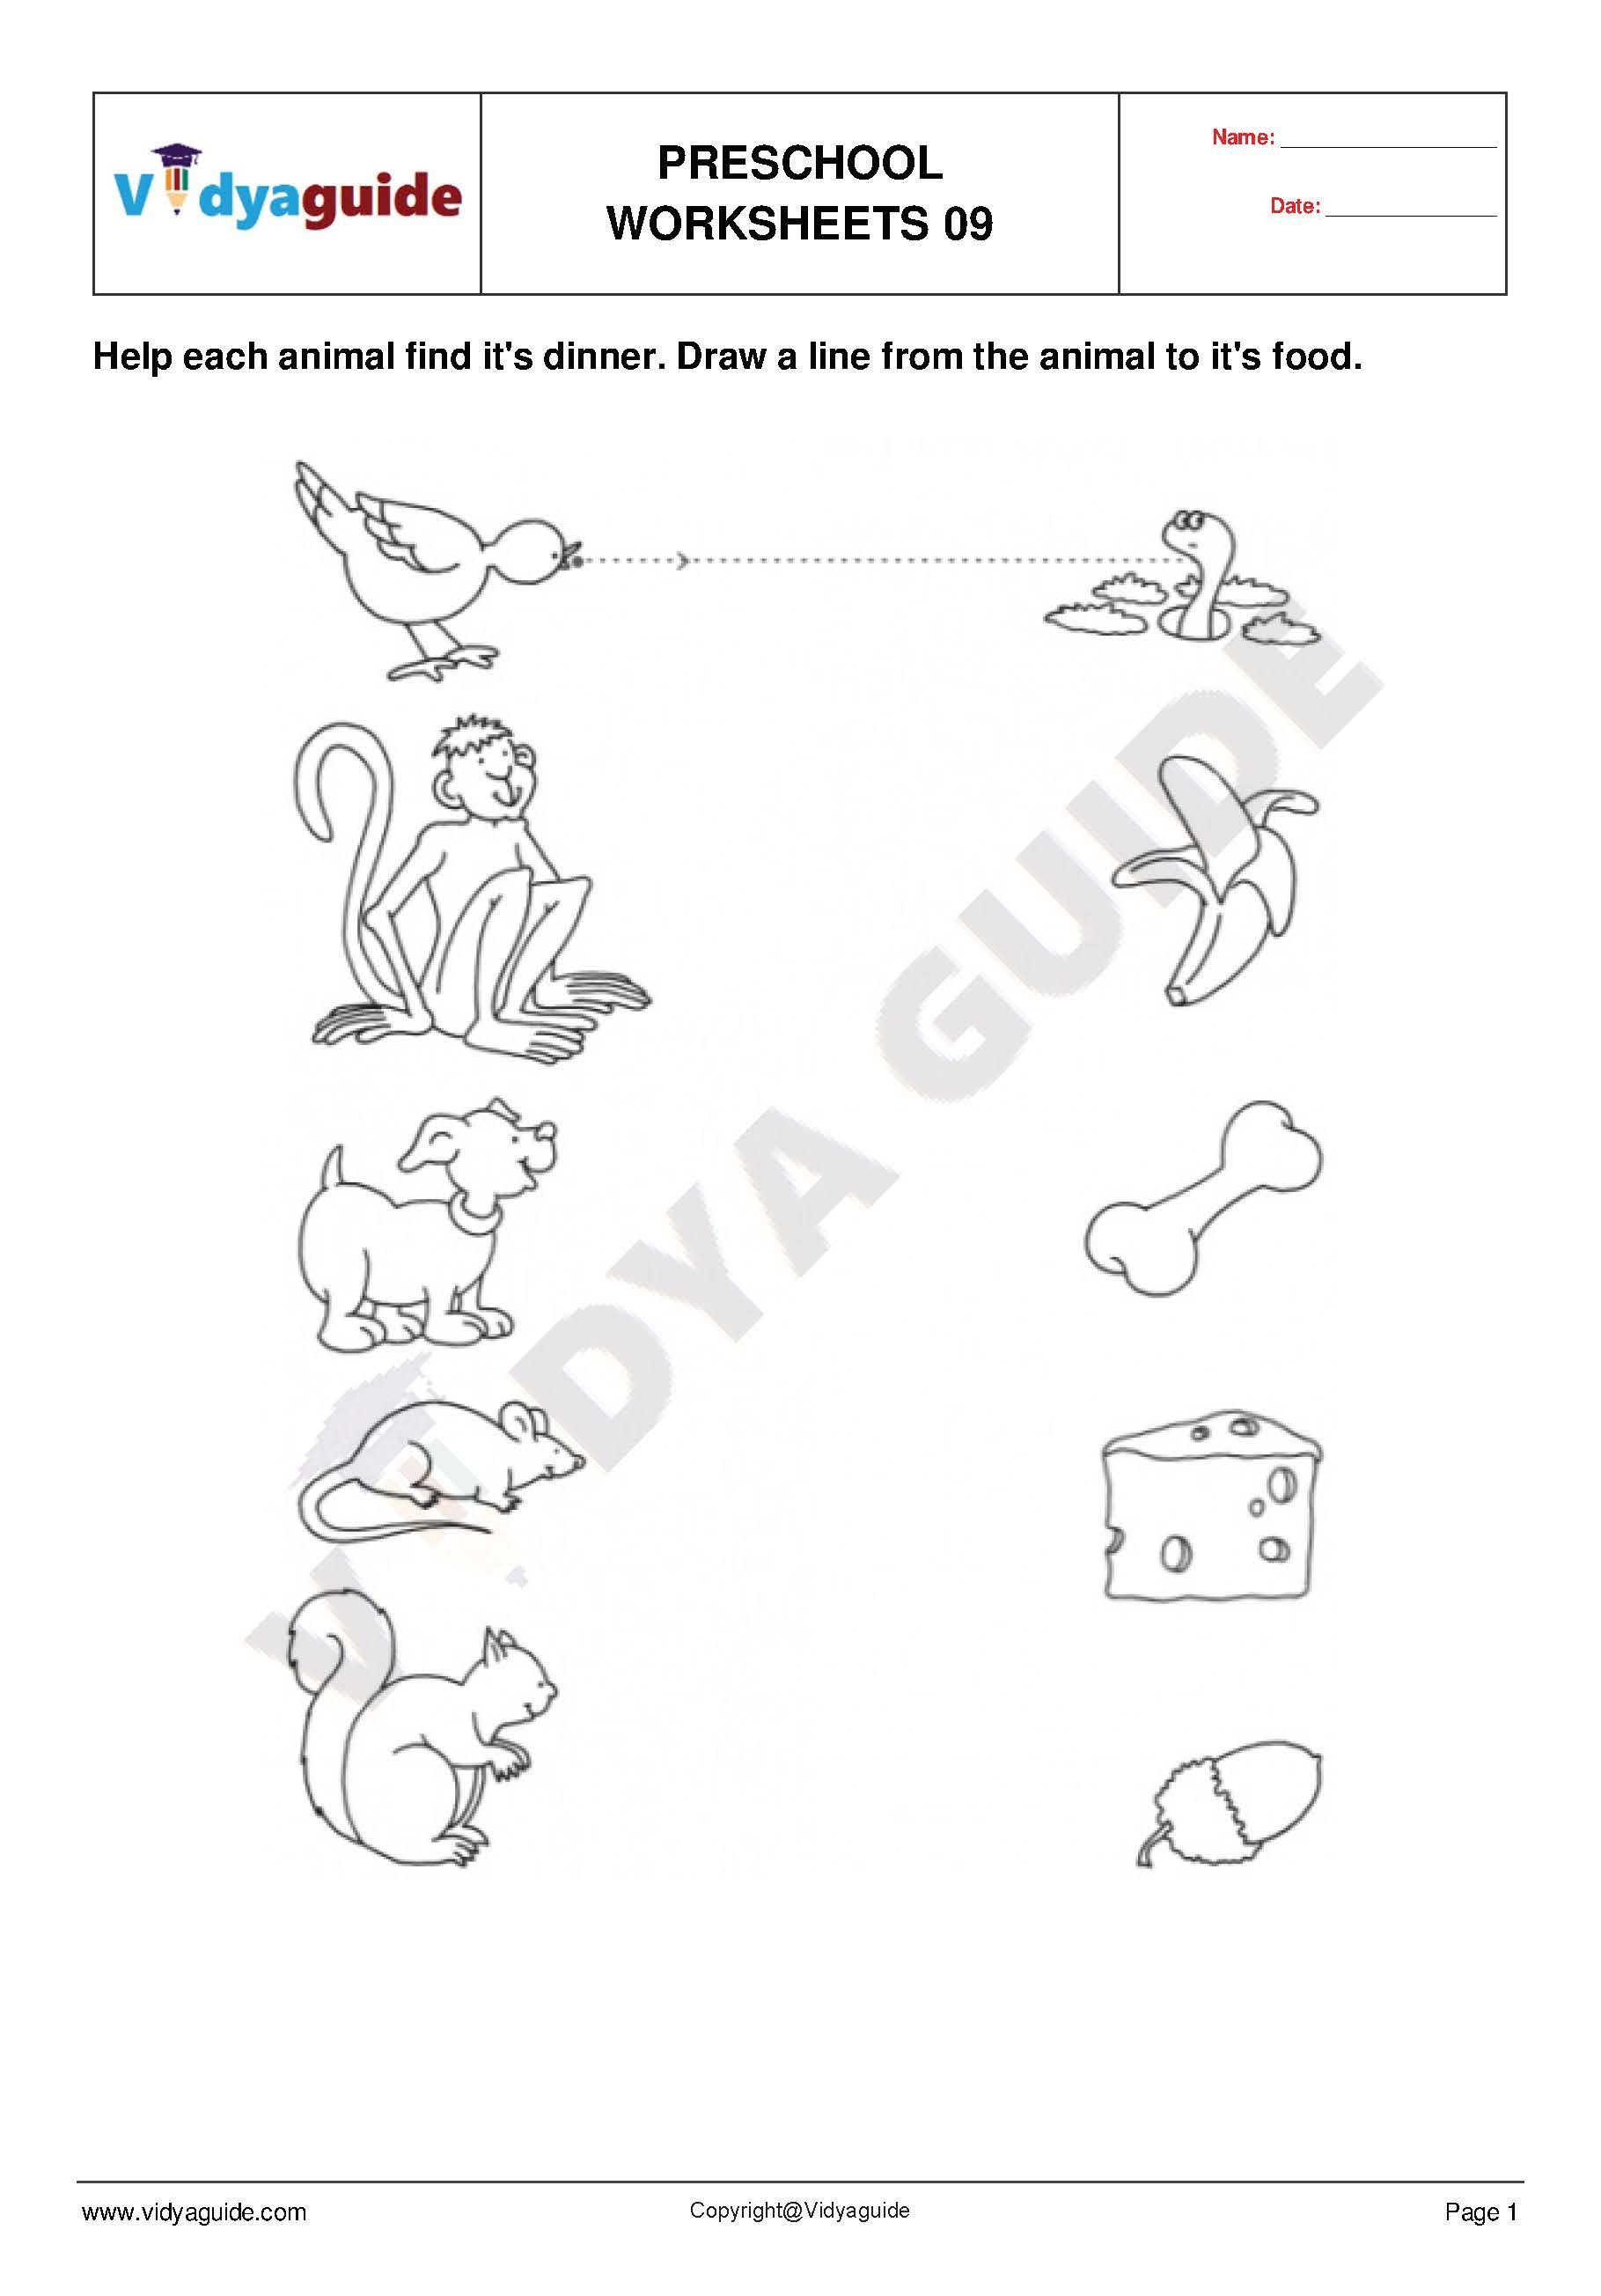 Download Free Printable Preschool Worksheets As To